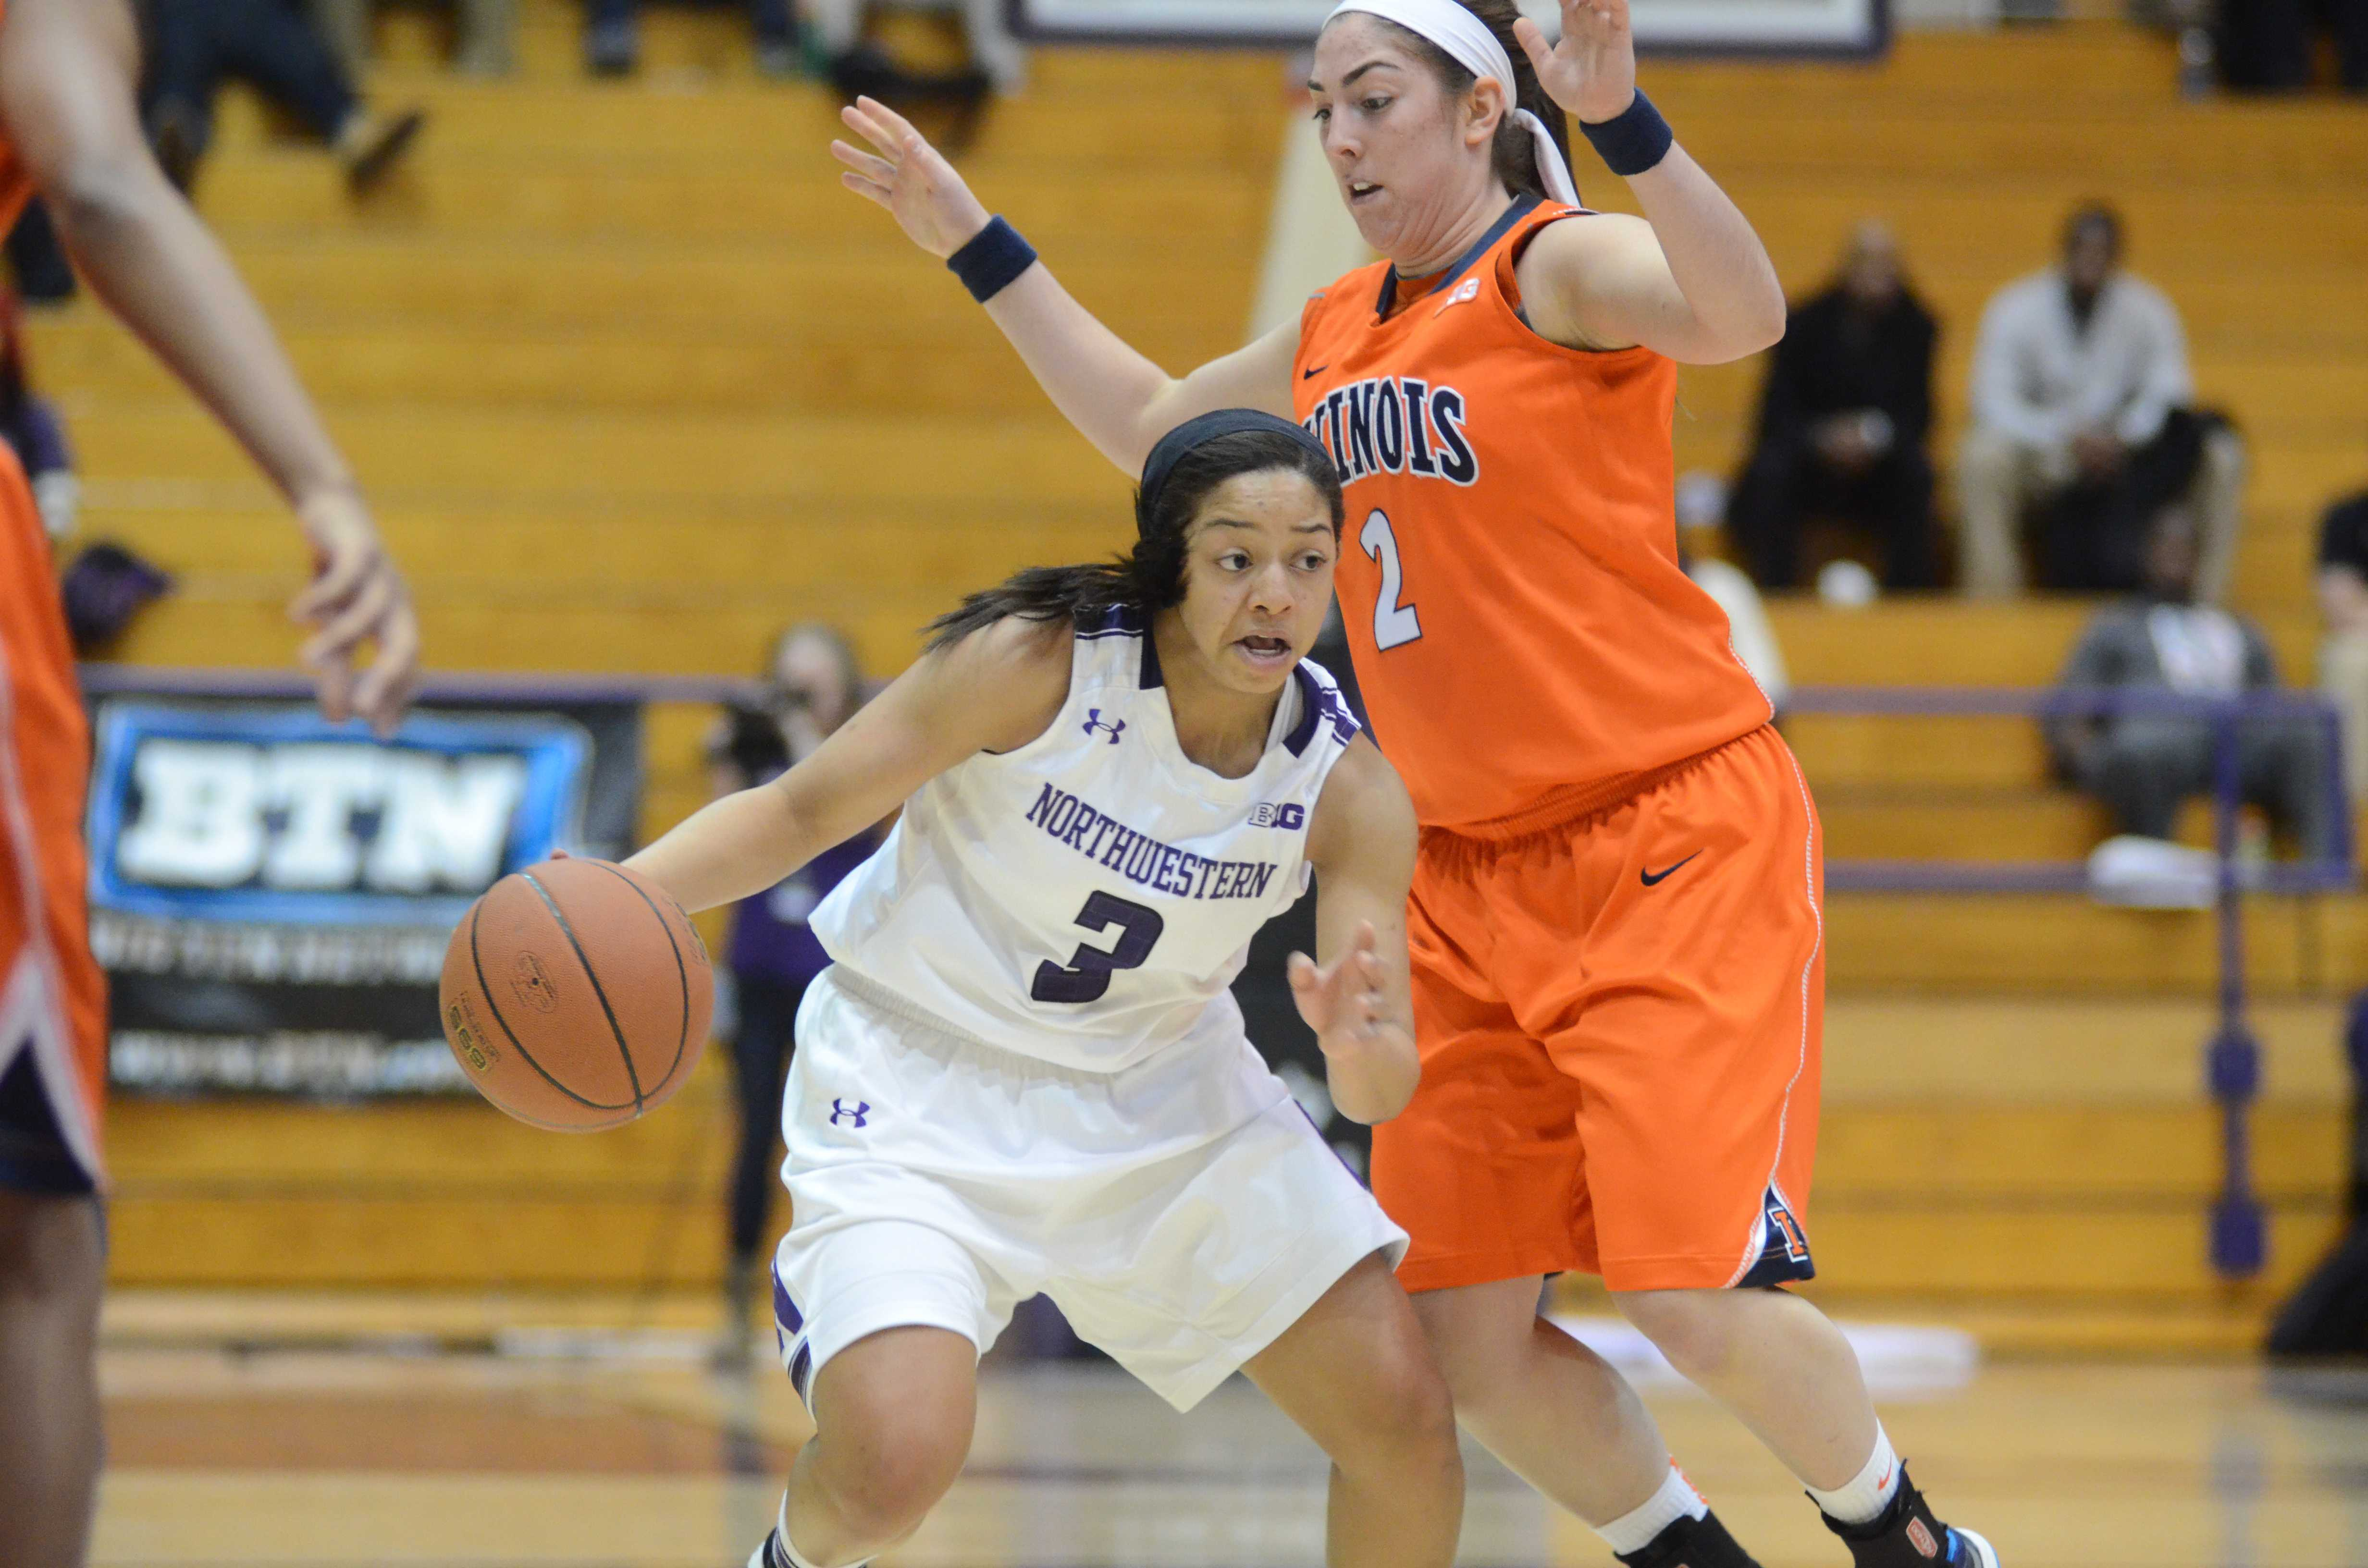 Freshman point guard Ashley Deary and Northwestern tripped up on Senior Night, falling 75-44 at home to Michigan State. The Spartans outscored the Wildcats by 22 points in a one-sided second half.